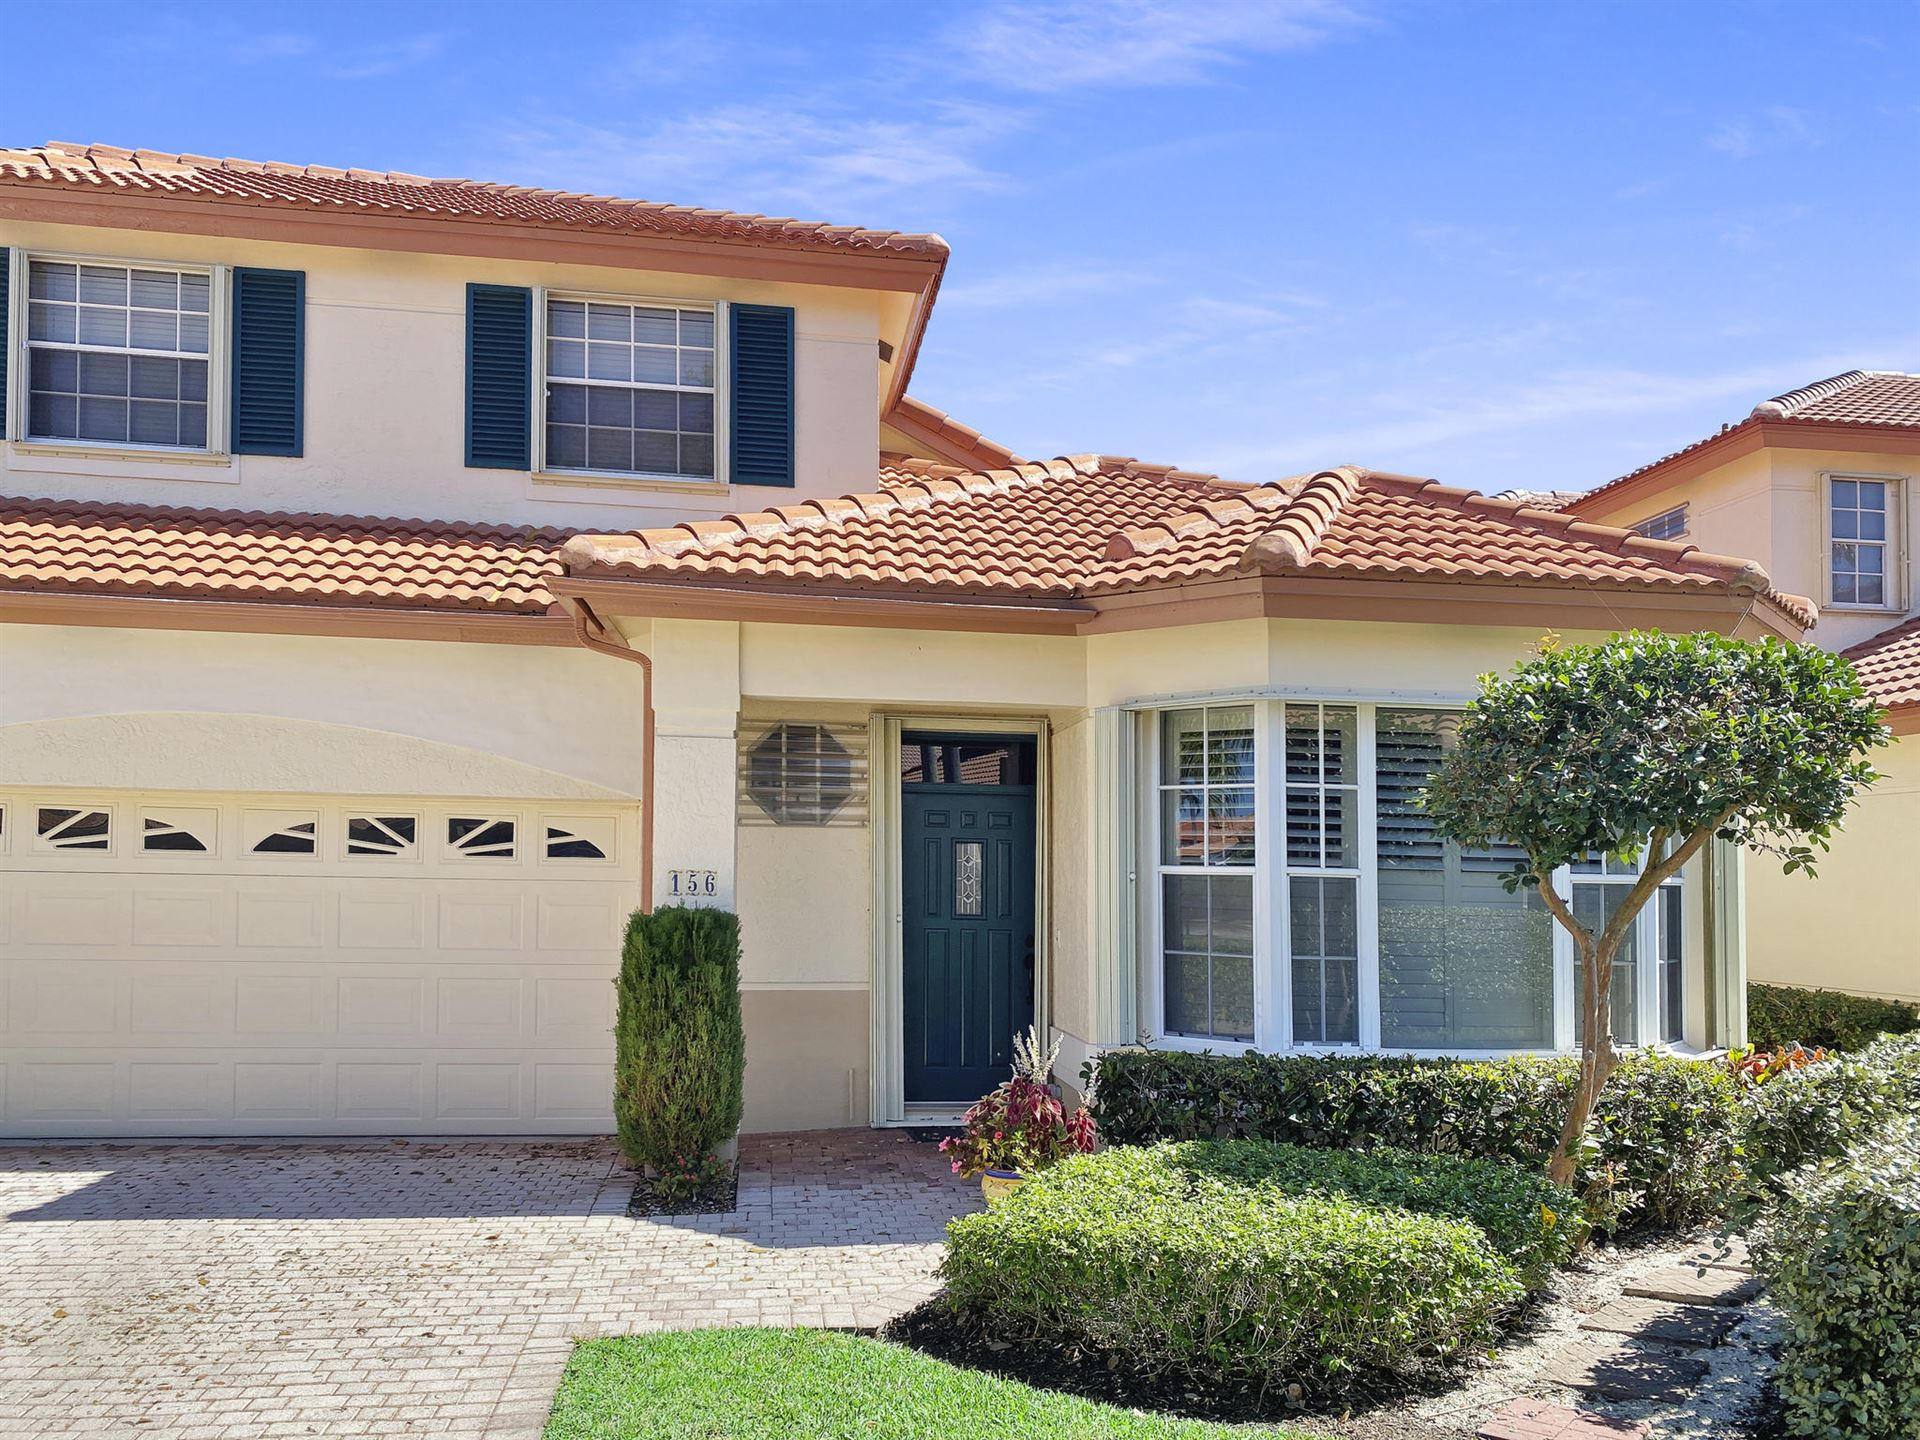 Photo of 156 Spyglass Way, Palm Beach Gardens, FL 33418 (MLS # RX-10695631)